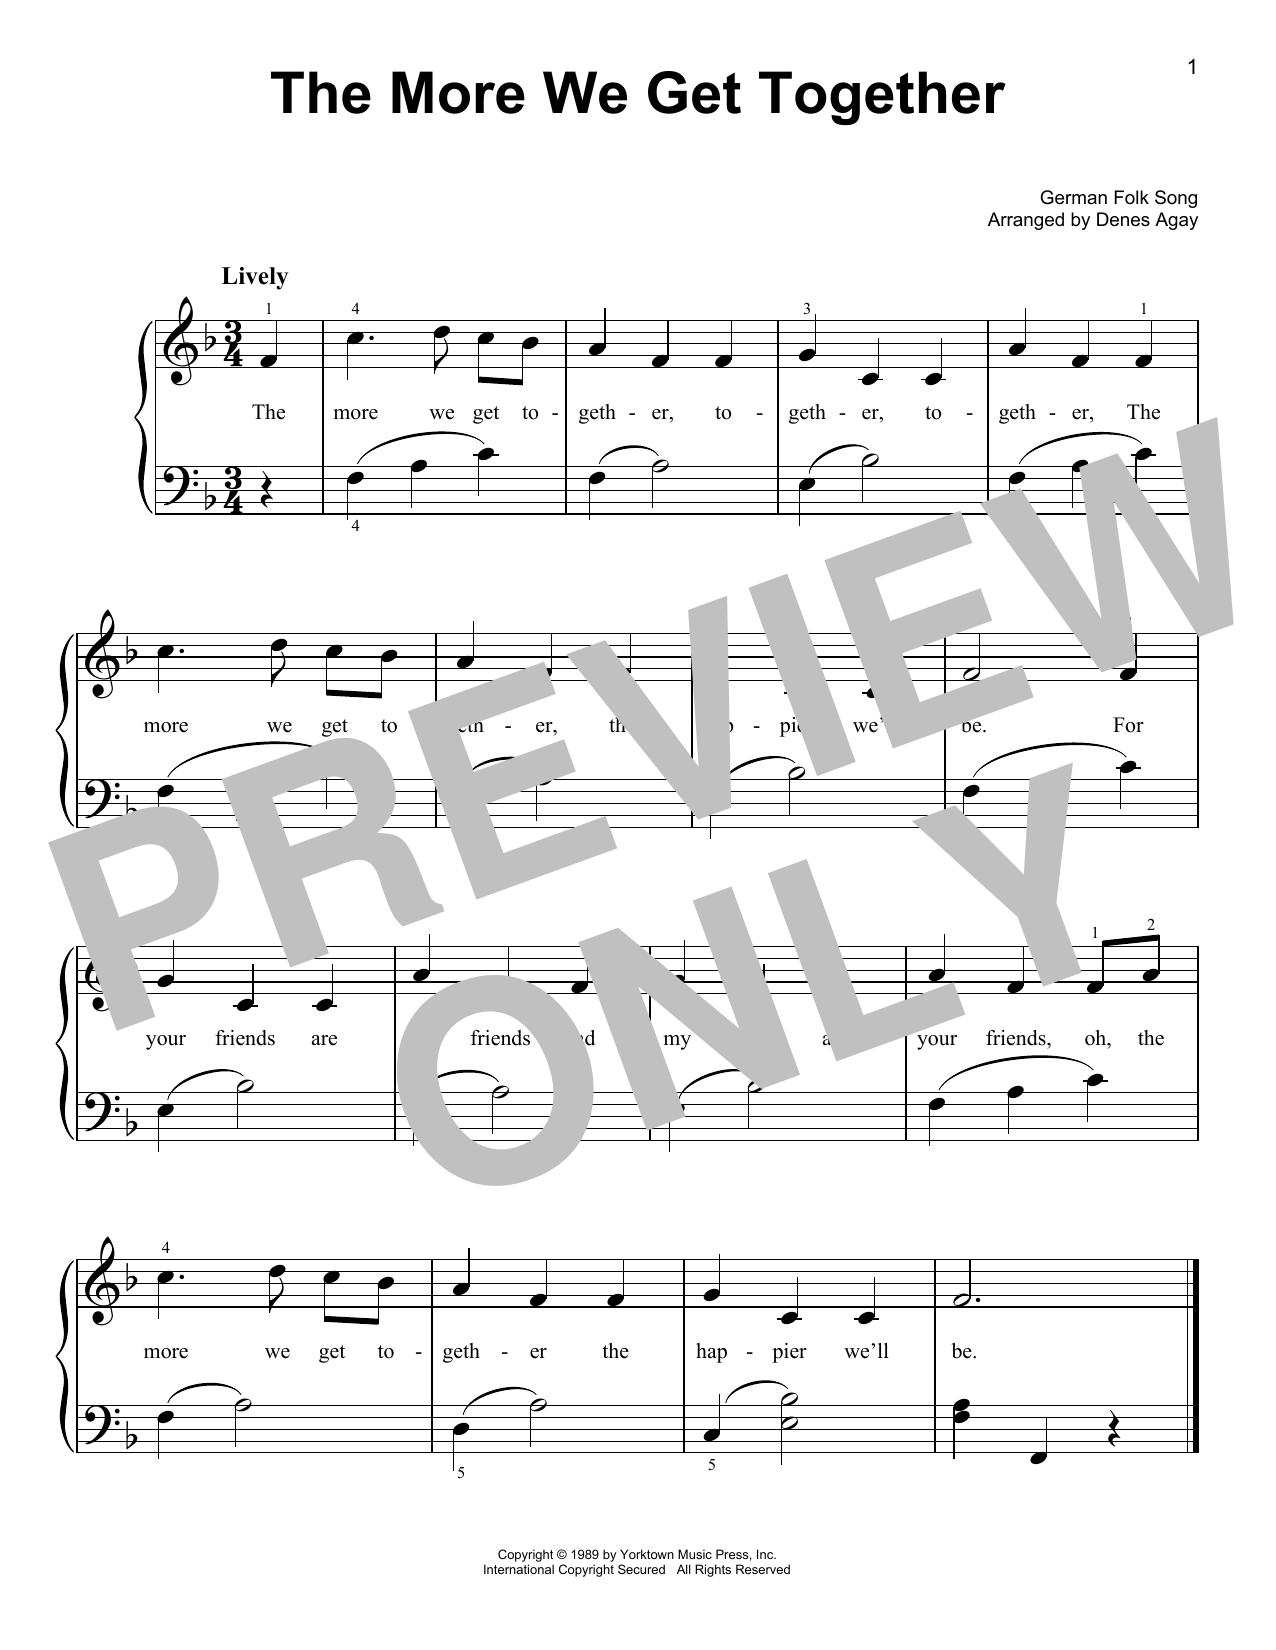 More We Get Together (arr. Denes Agay) (Easy Piano)